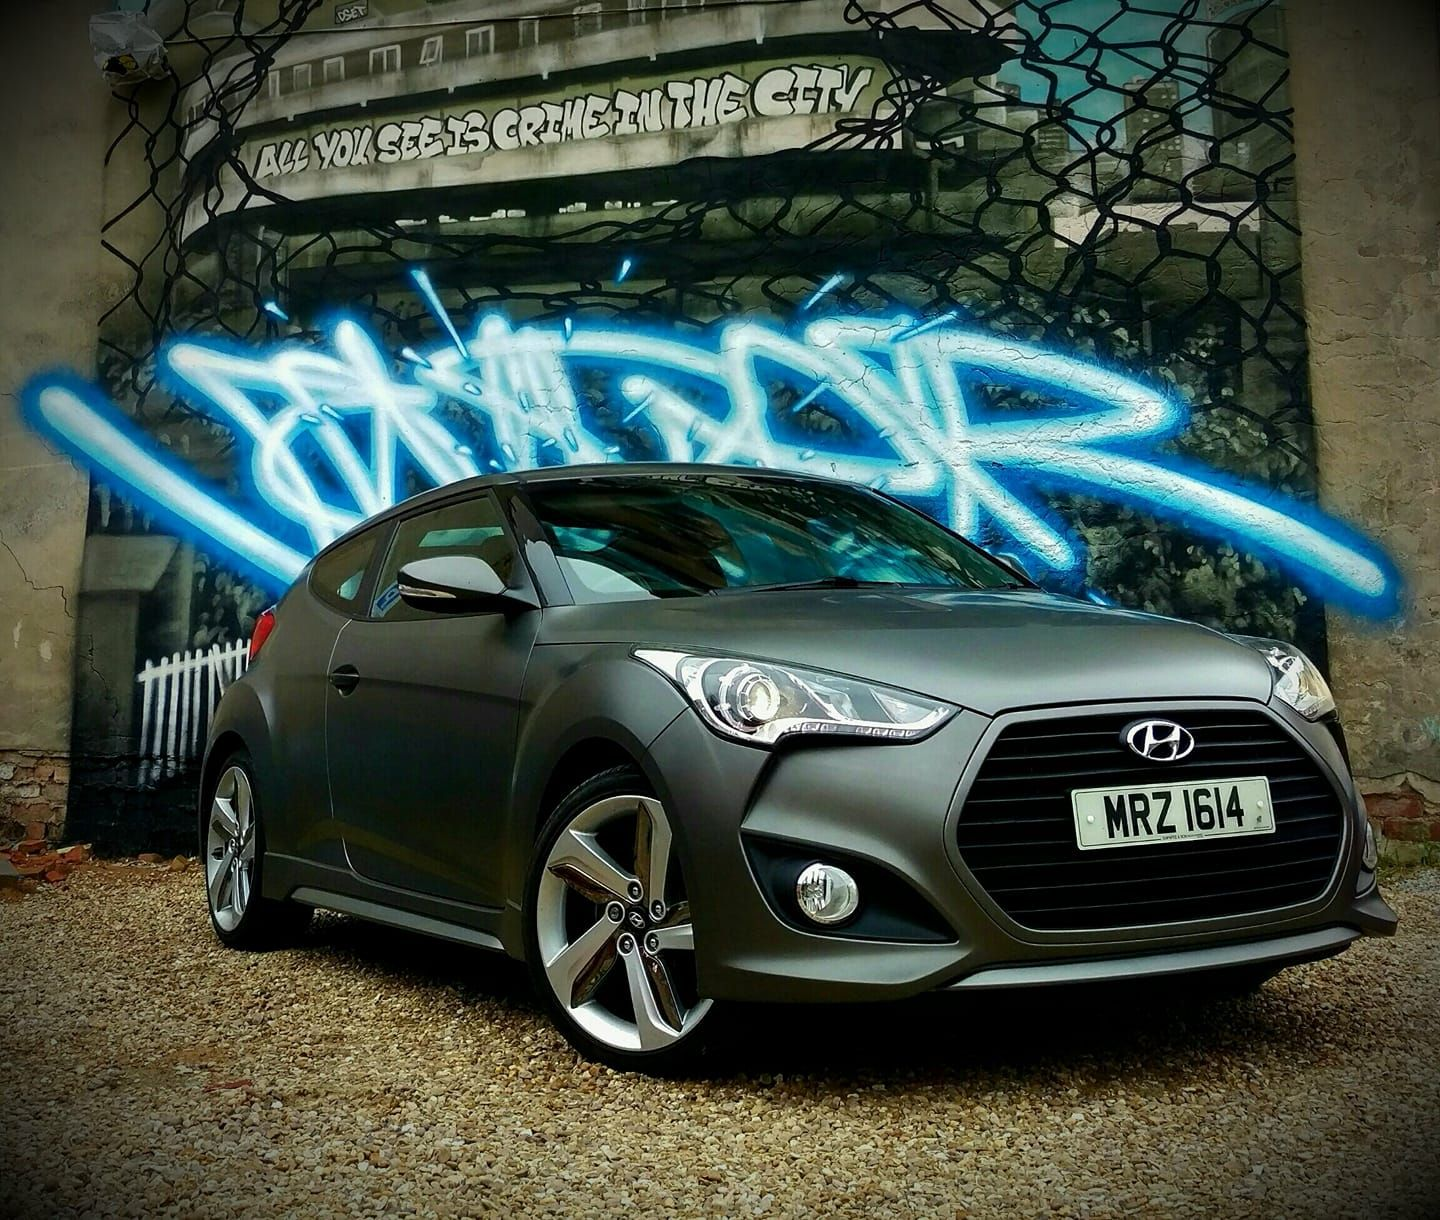 Pin By Sheridan Smith On Car Inspiration Pinterest Cars Hyundai Veloster Turbo Intercooler